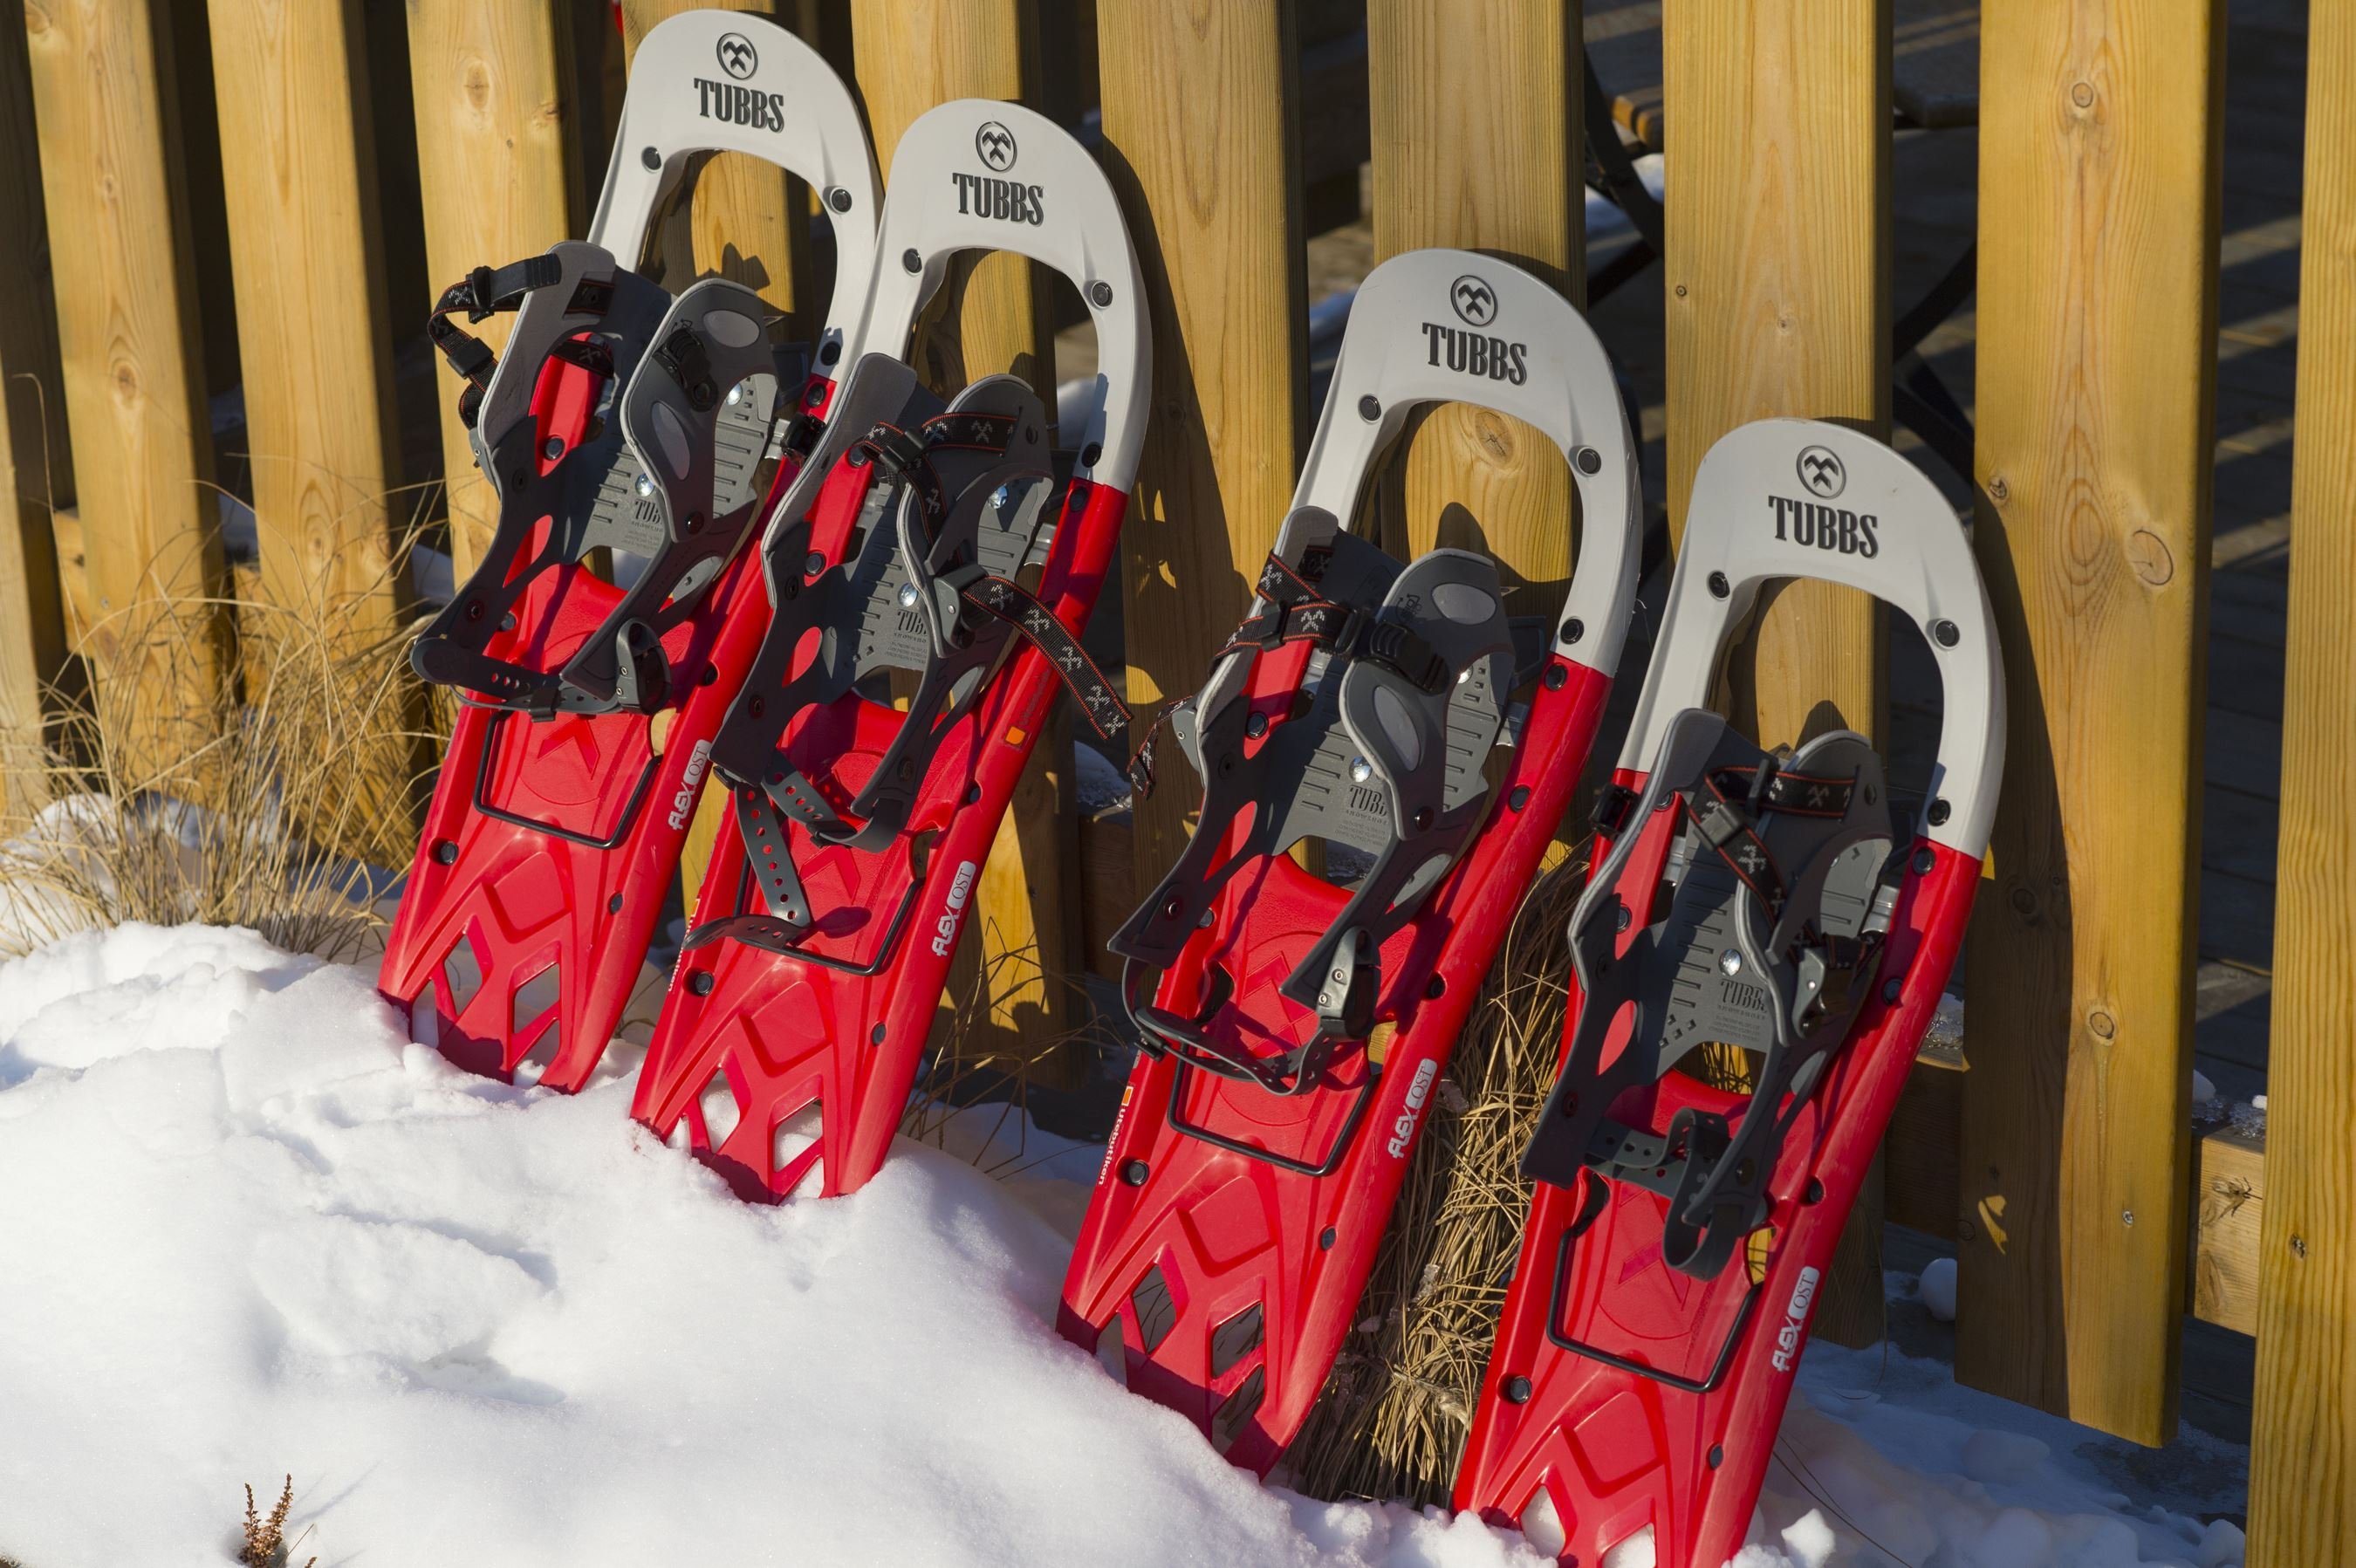 Lace up your snowshoes!